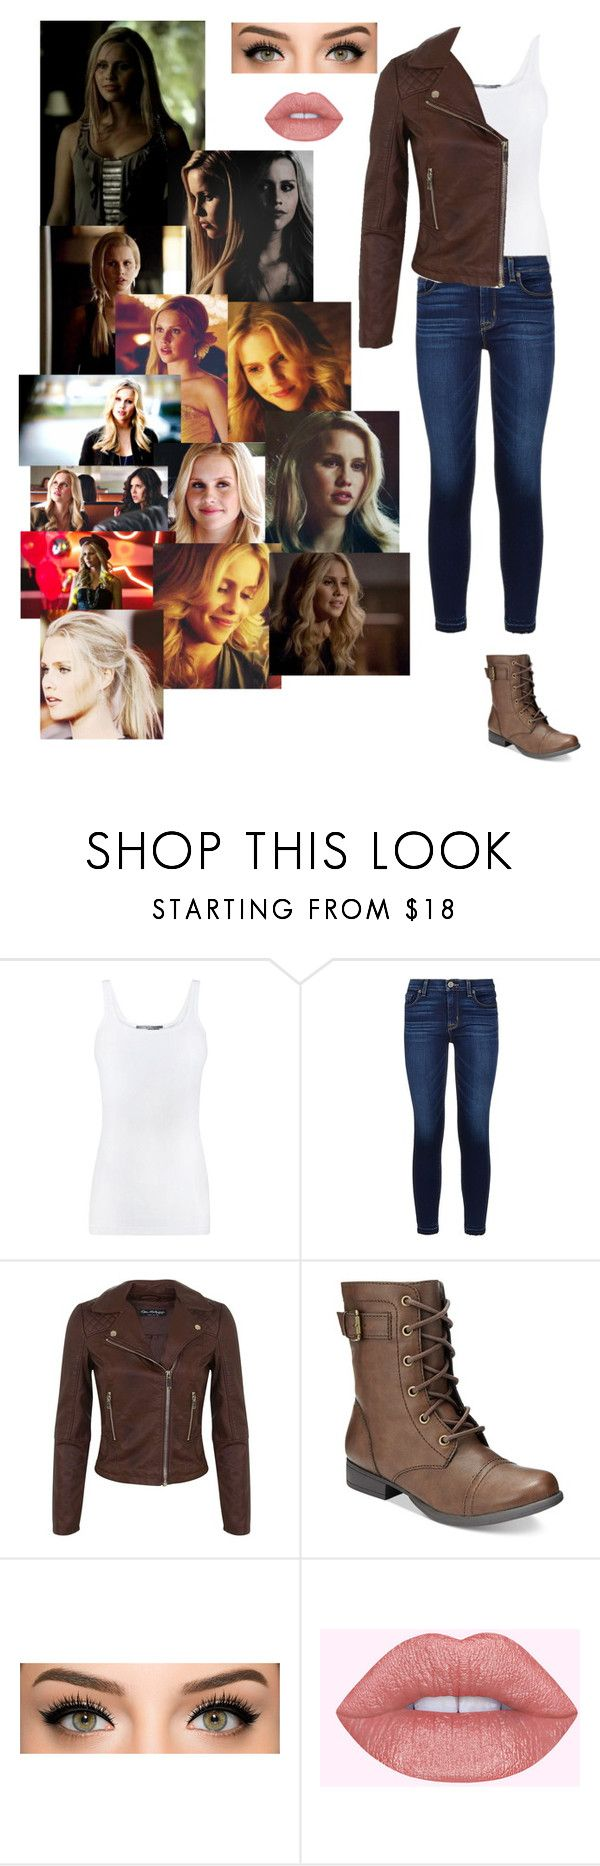 """Rebekah Mikaelson"" by avery-who ❤ liked on Polyvore featuring Vince, Hudson, Miss Selfridge and American Rag Cie"